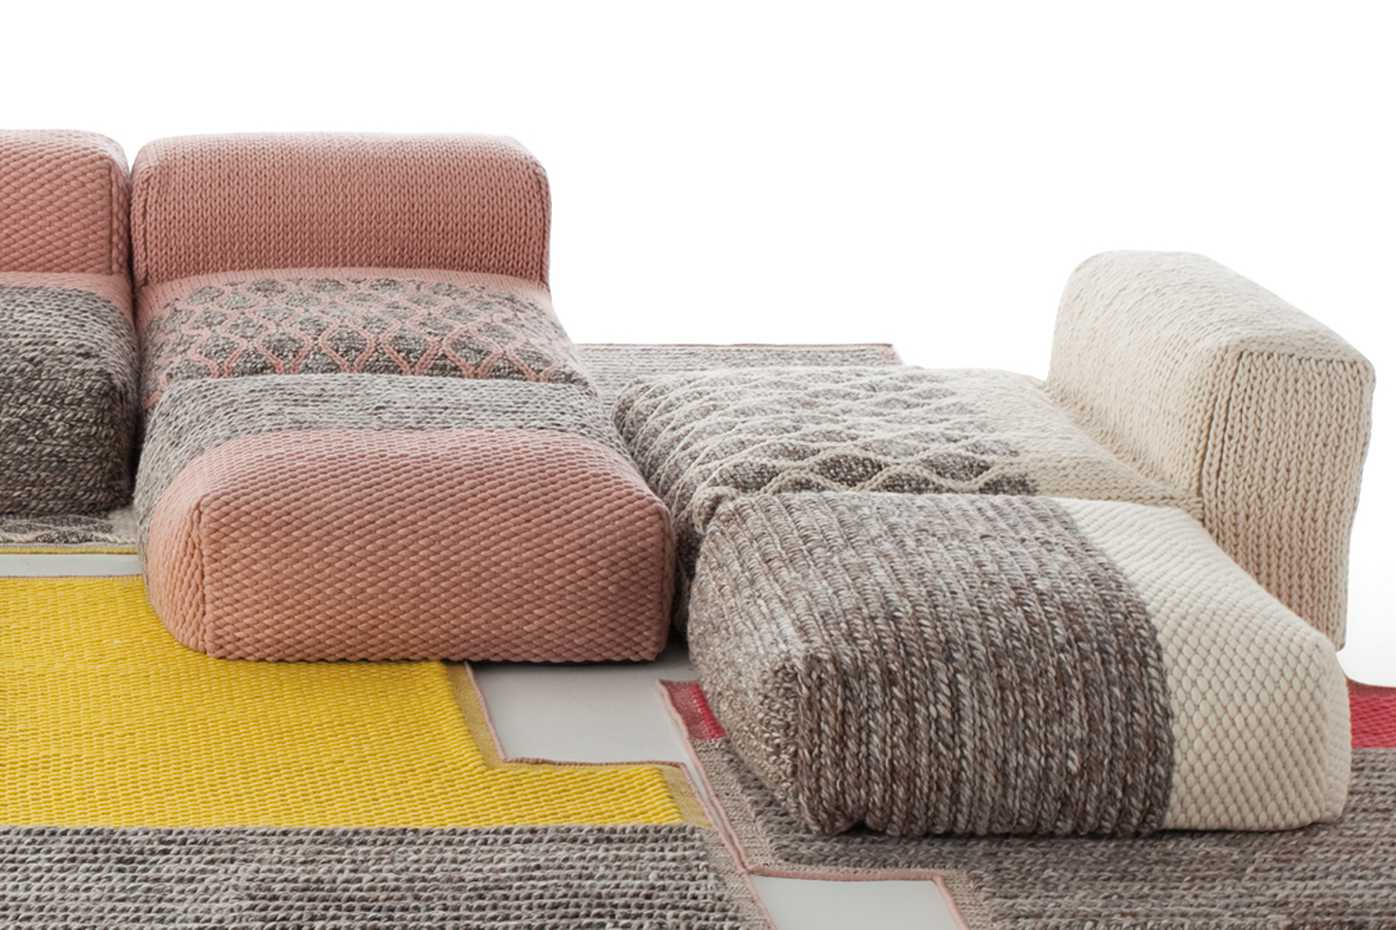 Mangas Space Poufs by Gan Rugs product image 6